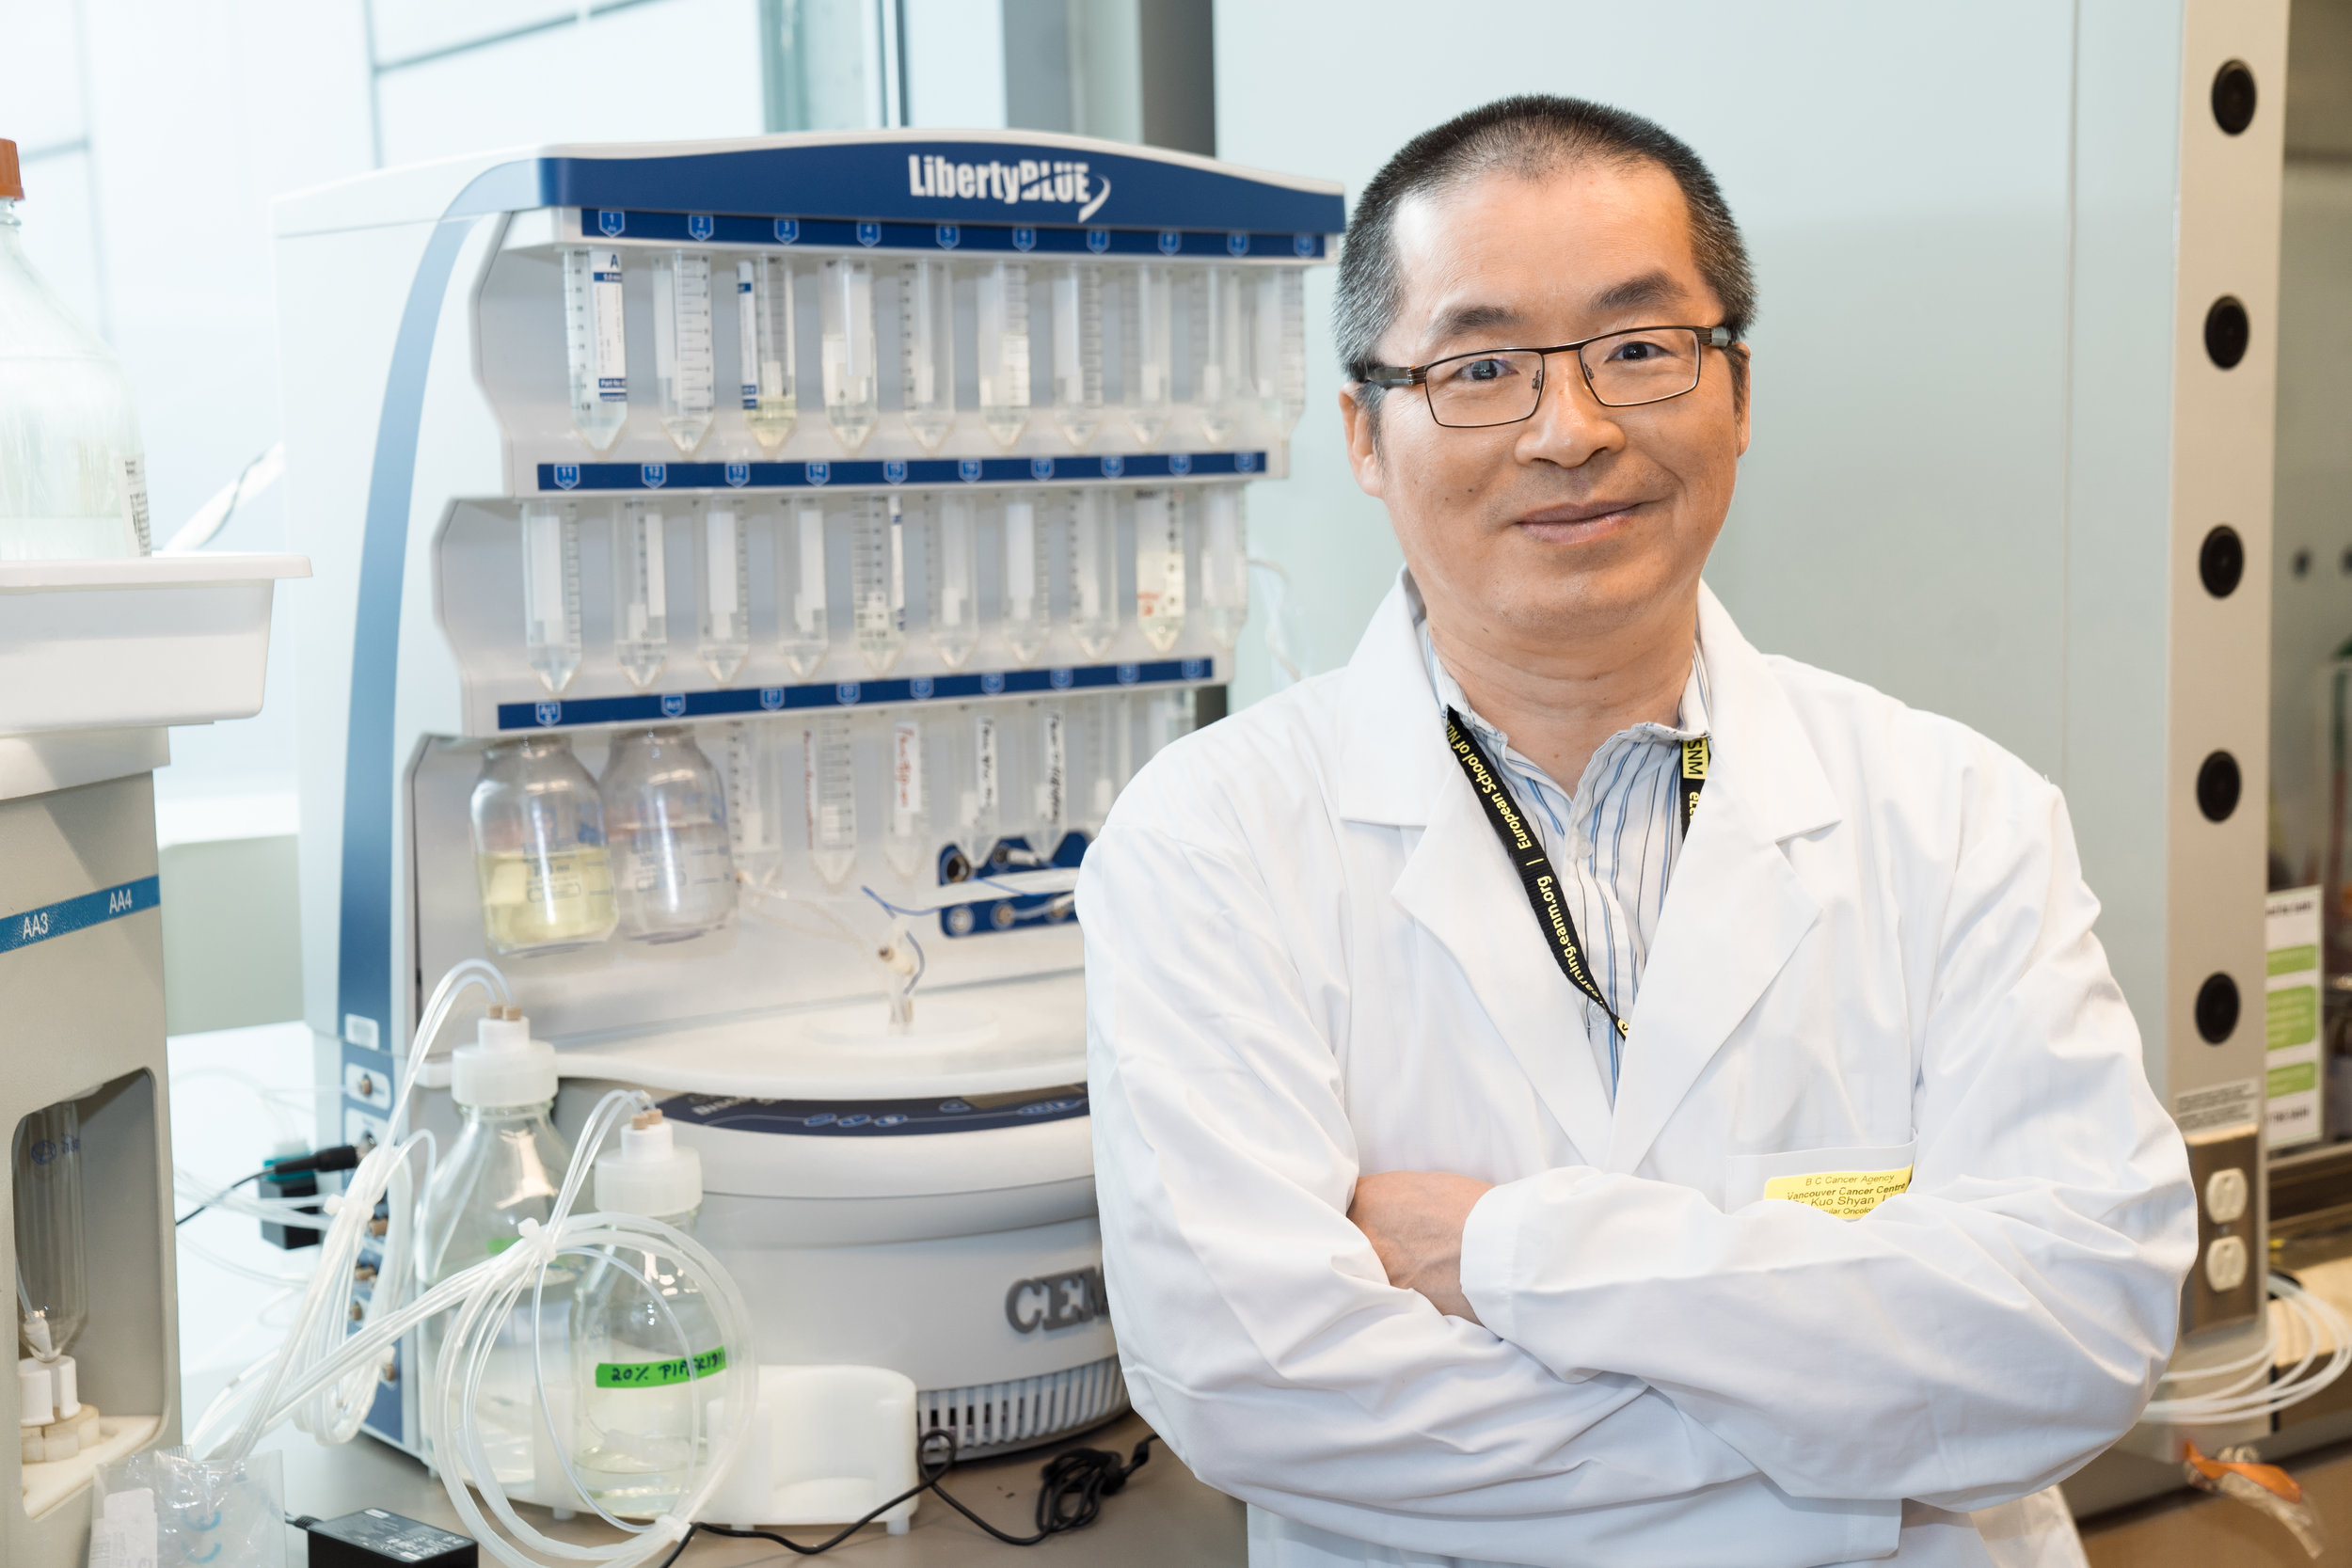 Dr. Kuo-Shyan Lin is currently an Associate Professor in the Department of Radiology at UBC, and a Senior Scientist in the Department of Molecular Oncology at BC Cancer. He also heads the Radiochemistry Program at the BC Cancer Research Centre of Excellence for Functional Cancer Imaging.